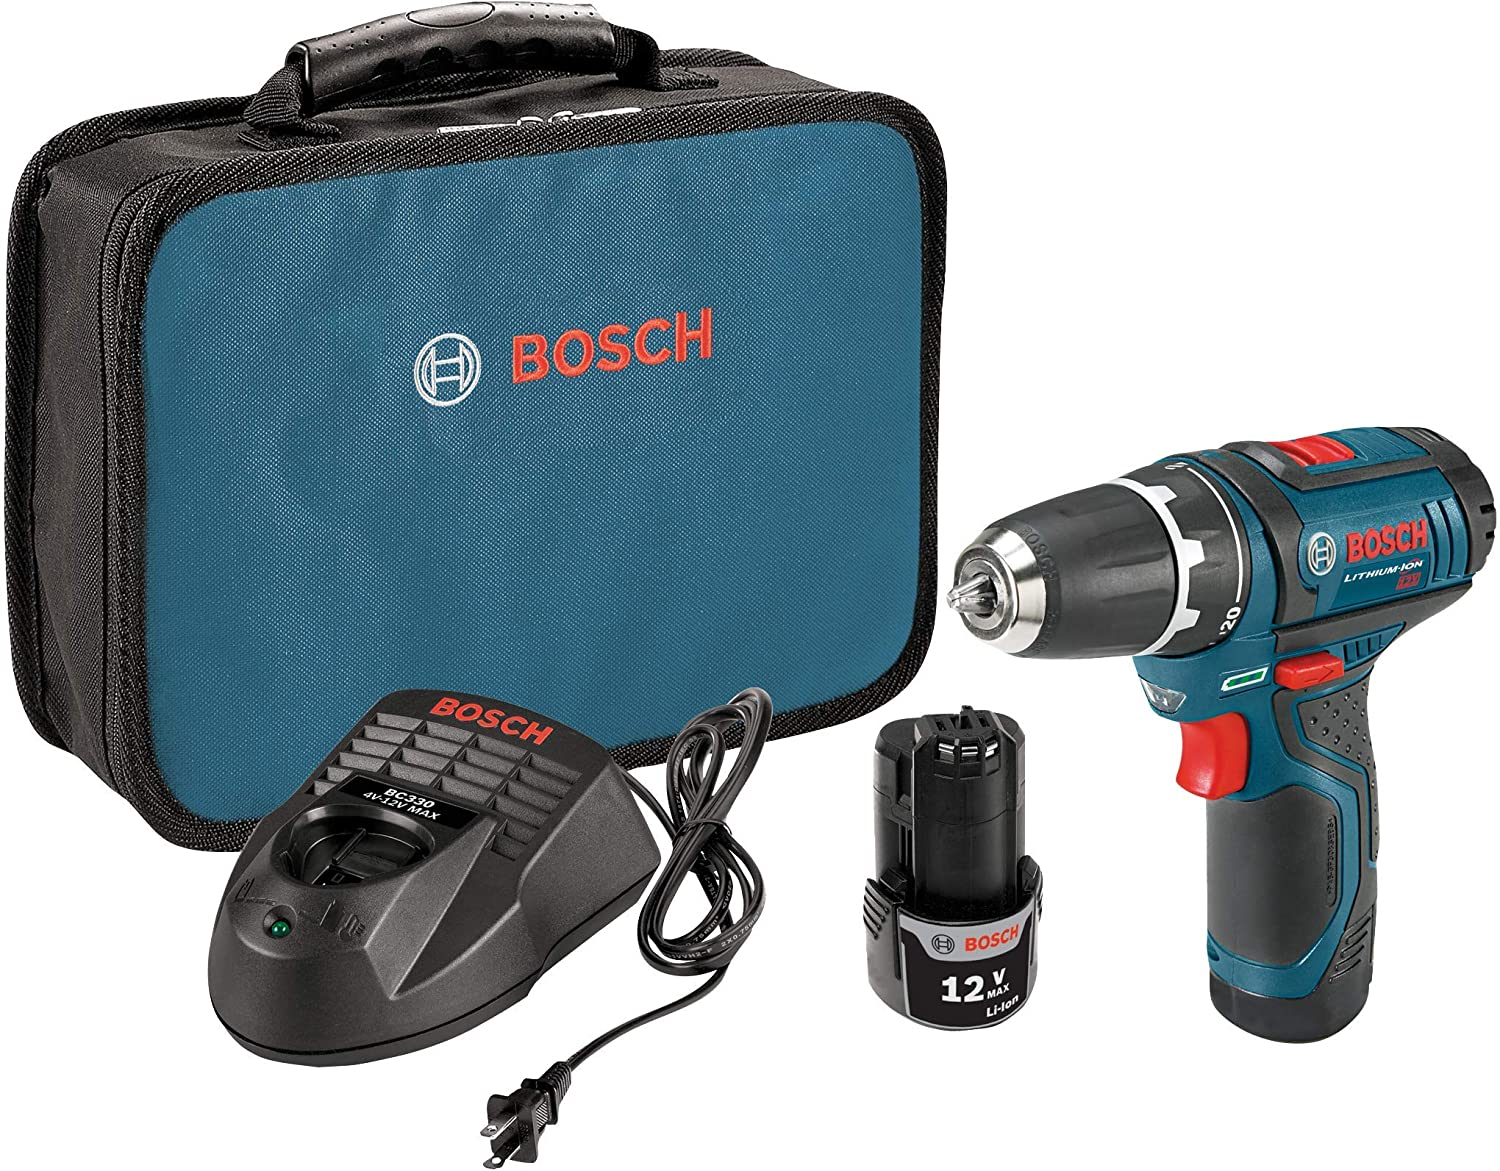 Bosch Power Tools Drill Kit - PS31-2A